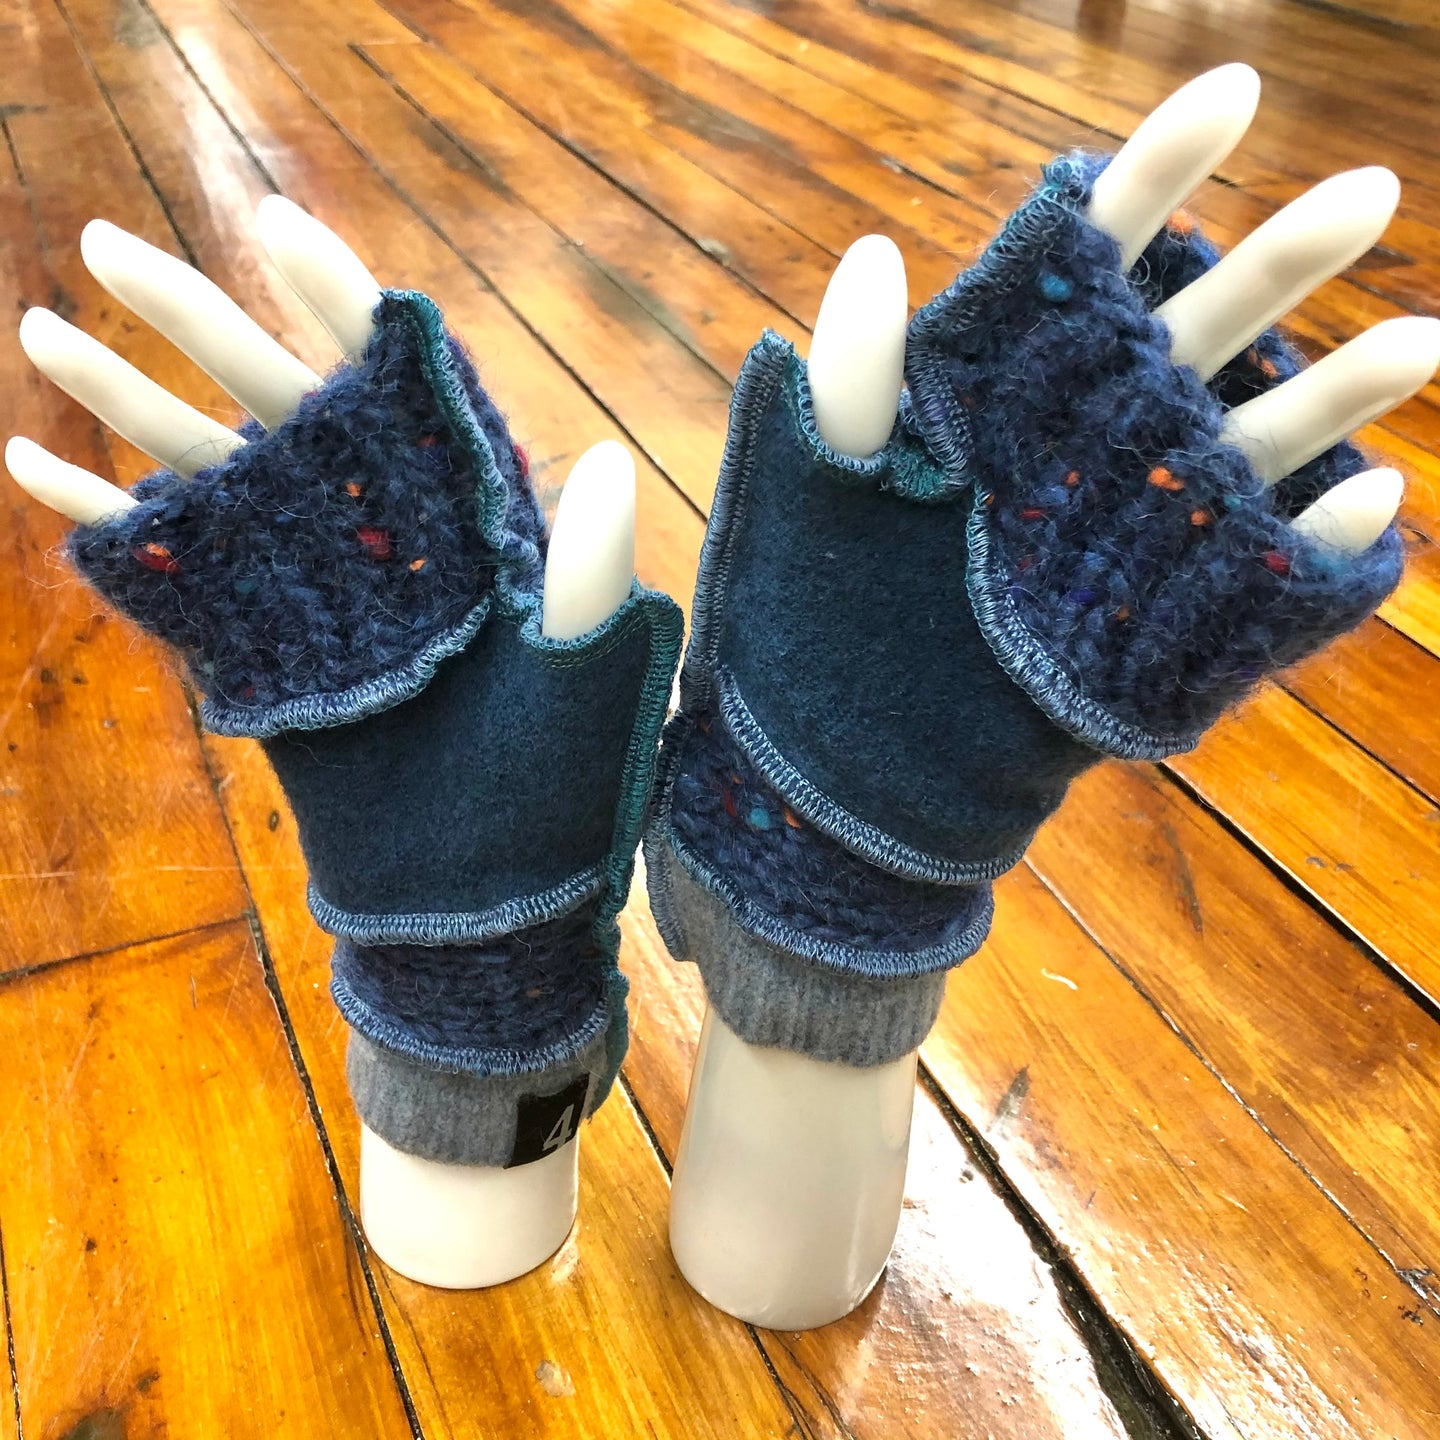 chunky jewel tones of teals + blues fingerless mittens